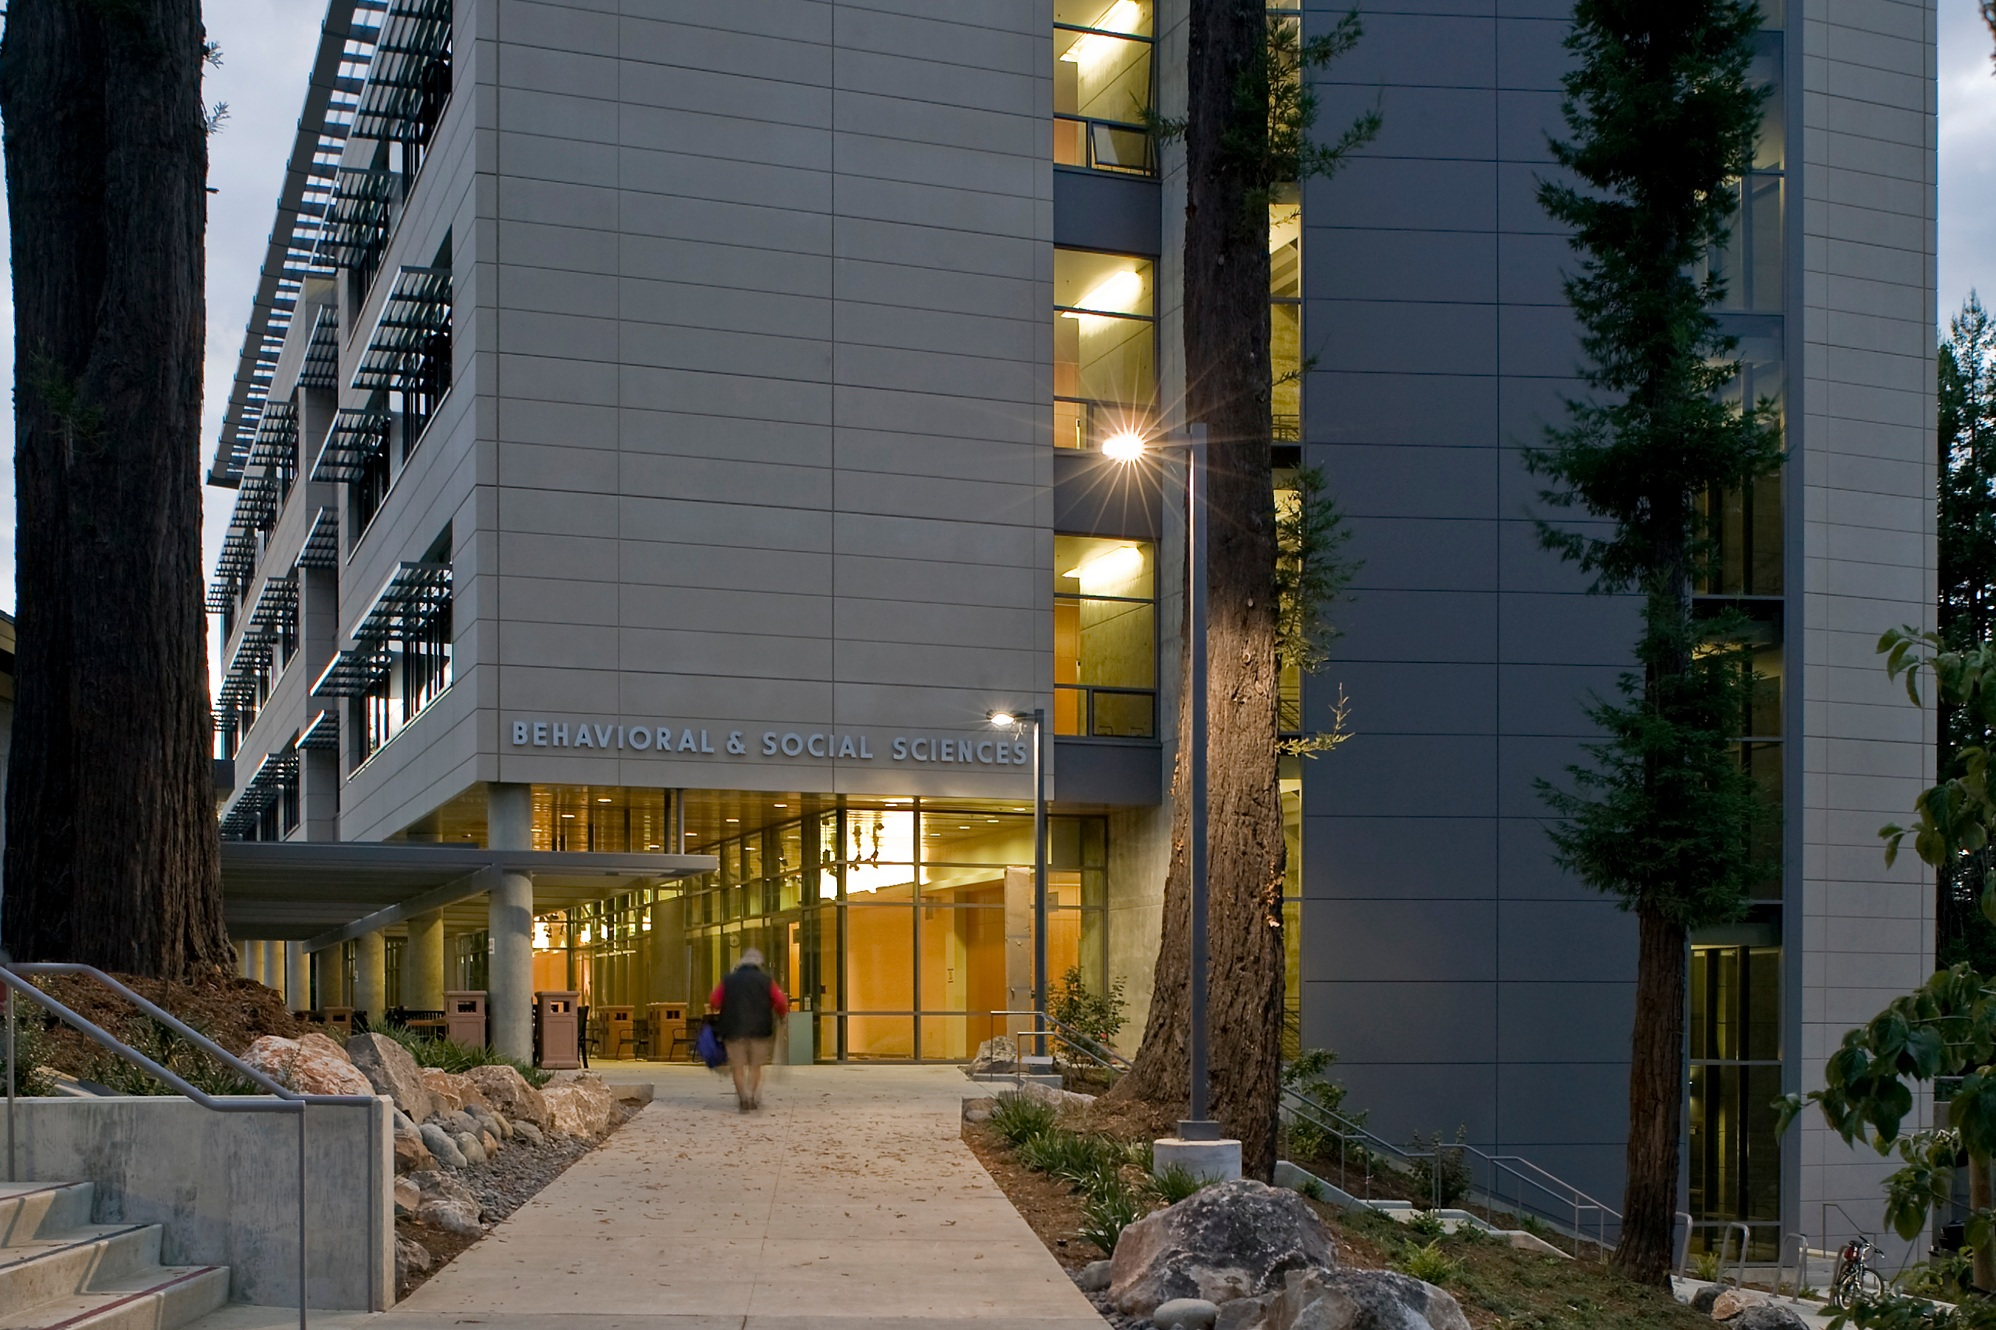 Humboldt State University Behavioral and Social Sciences Building